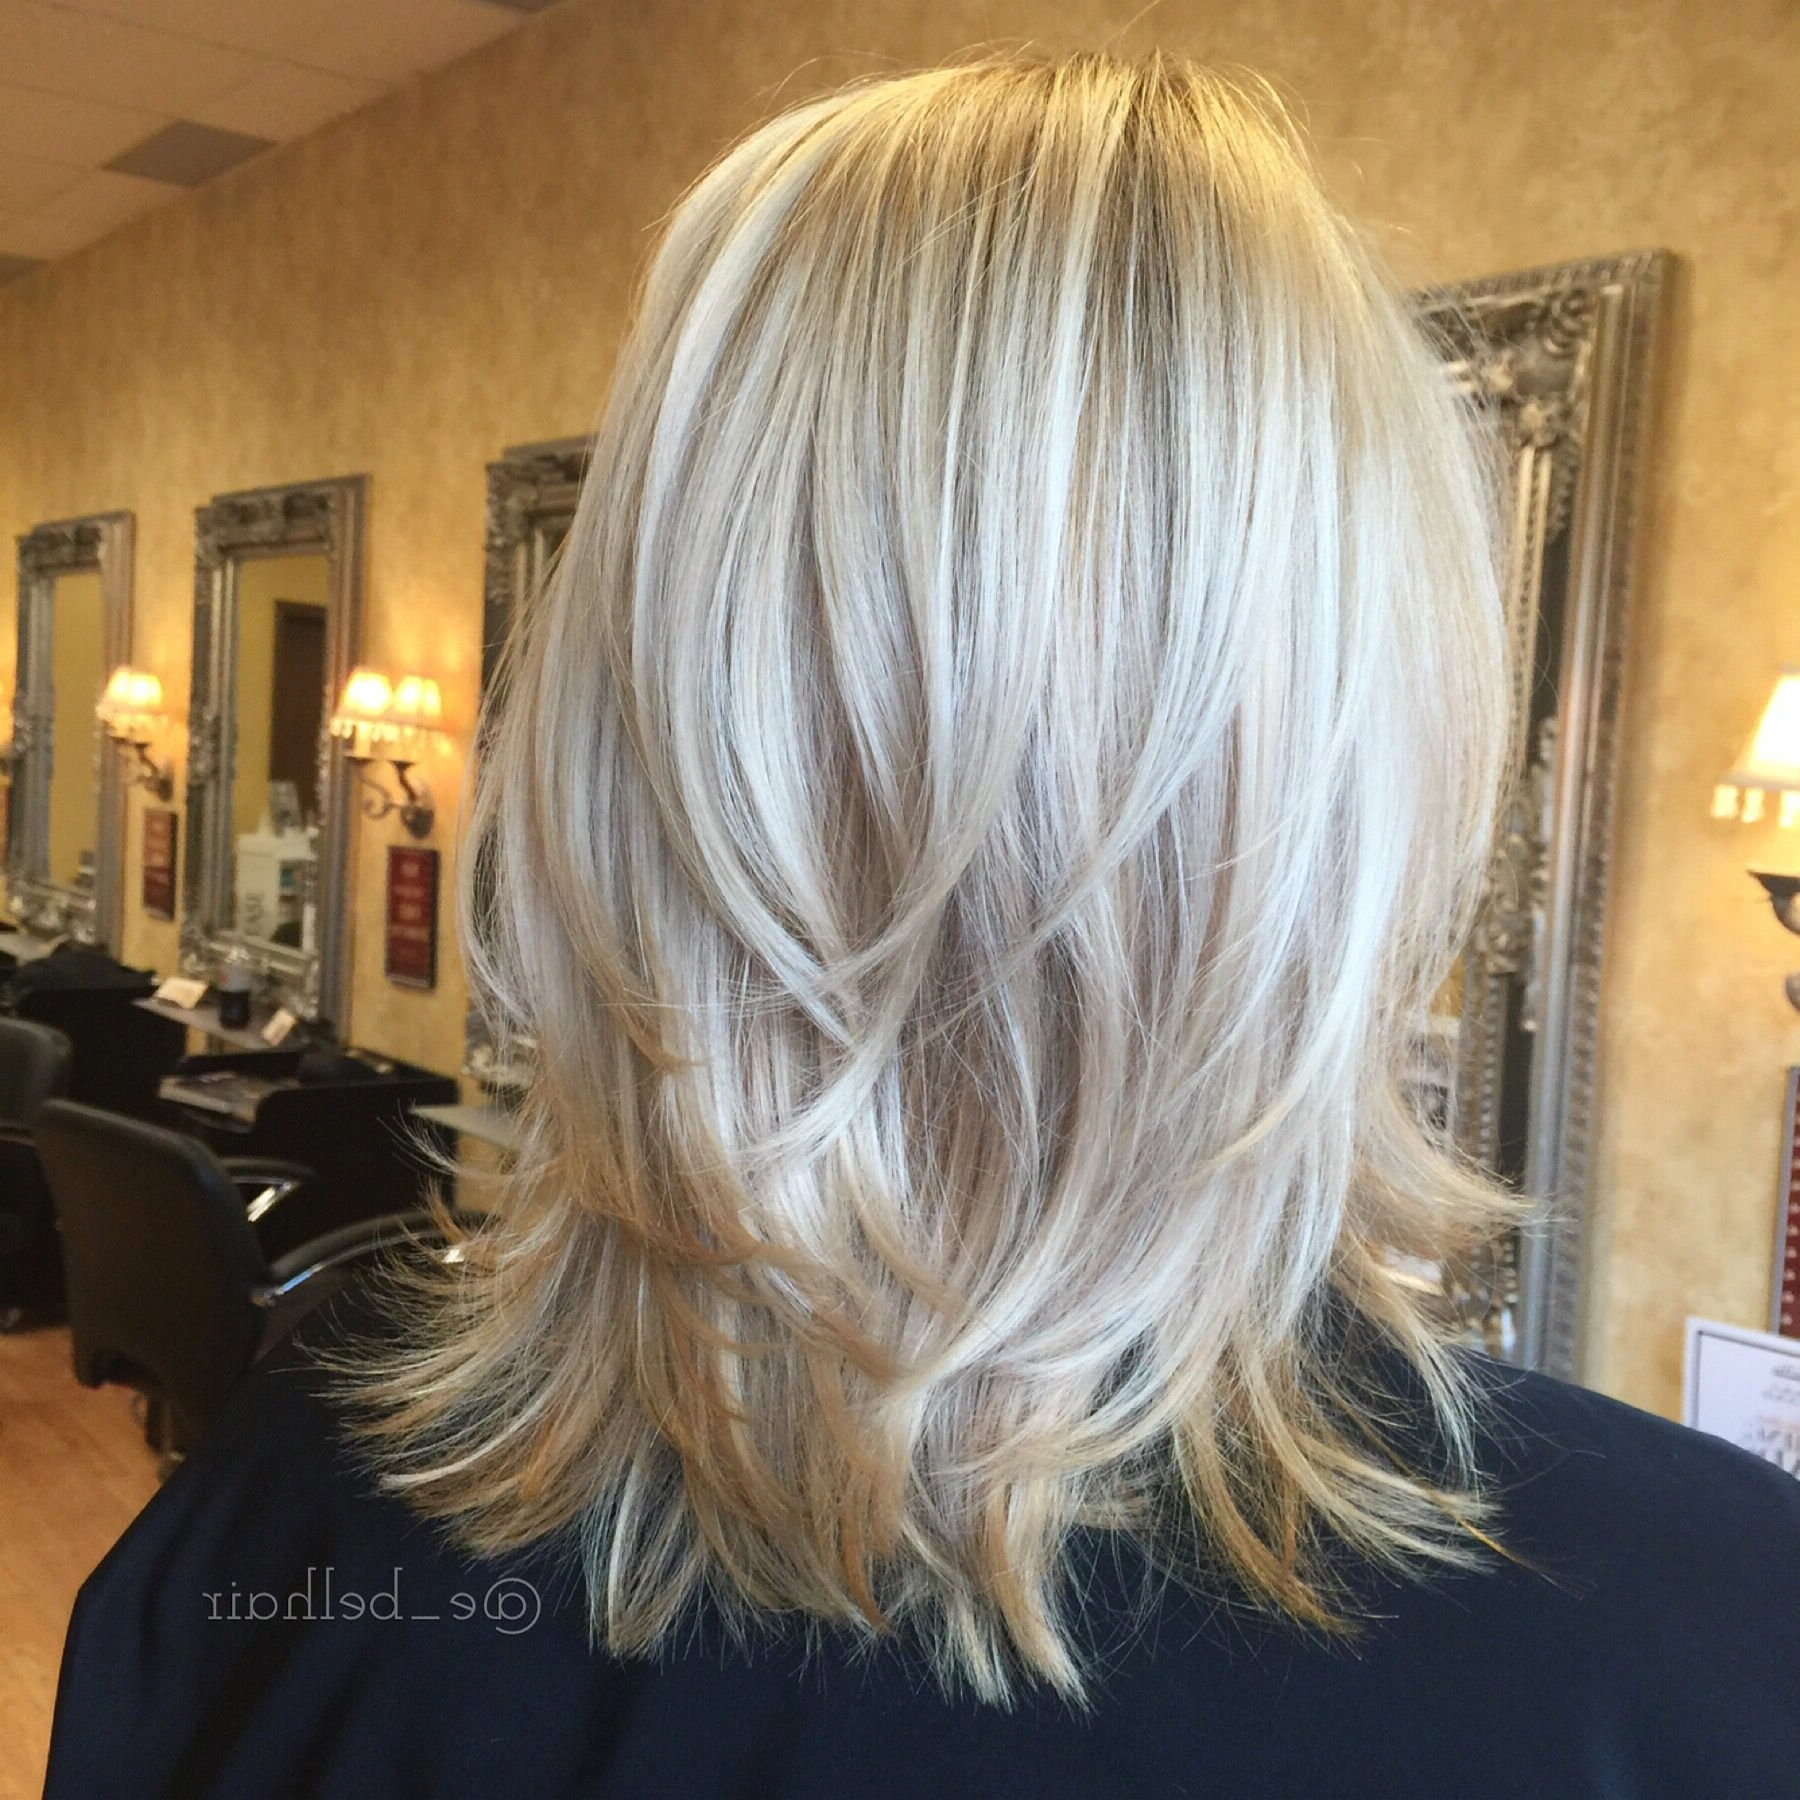 Shoulder Length Cut With Tousled Layers And Fresh Blonde Color In Most Recently Released Tousled Shoulder Length Ombre Blonde Hairstyles (View 14 of 20)